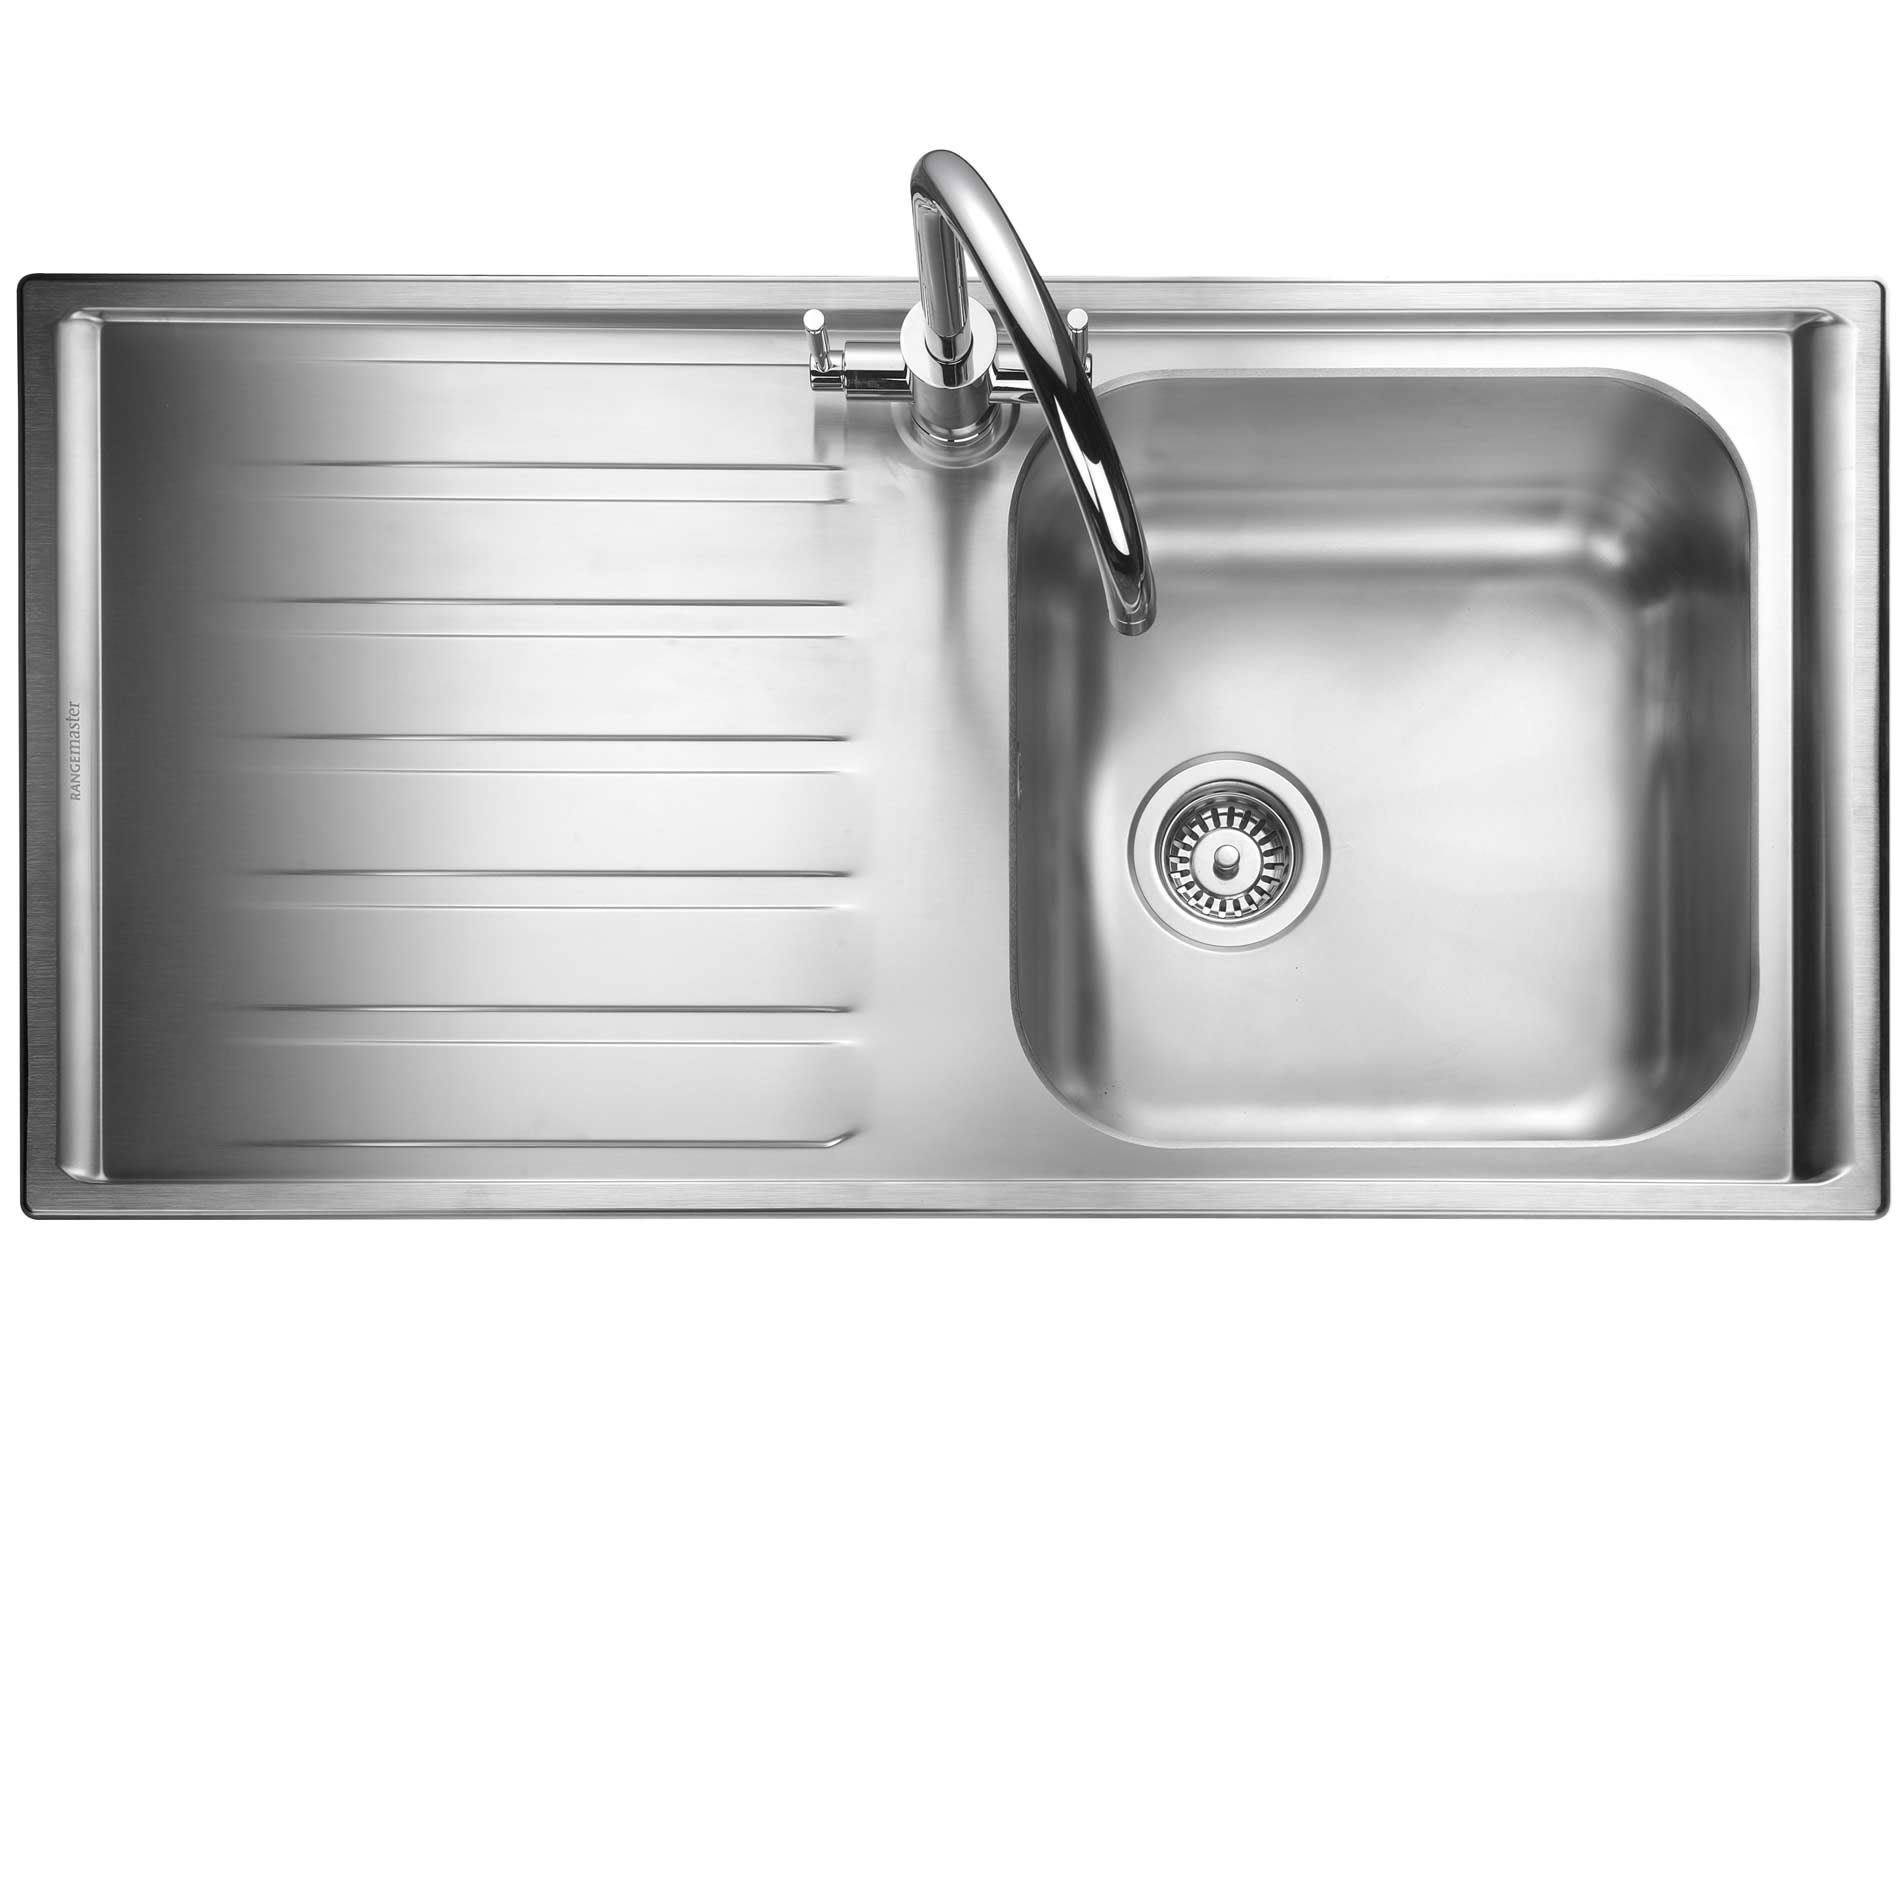 kitchen taps and sinks rangemaster manhattan mn10101 stainless steel sink 6229